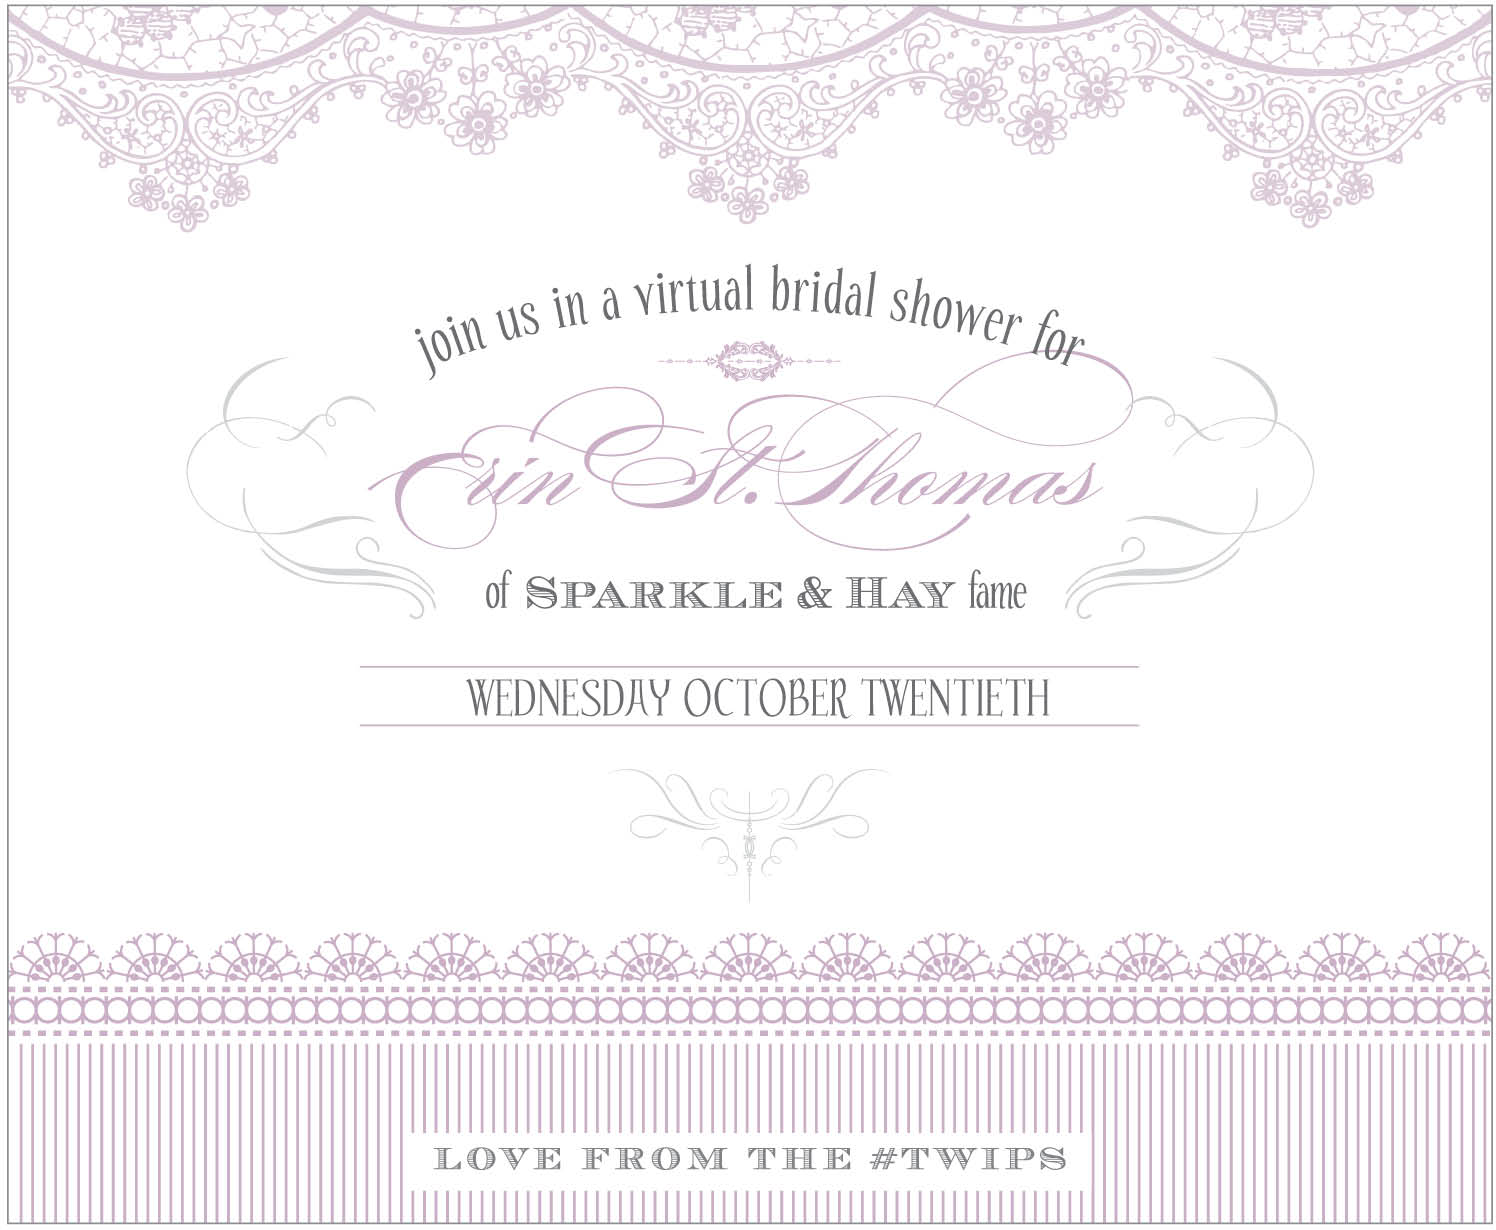 Bride Goggles Youre Invited To Erins Virtual Bridal Shower